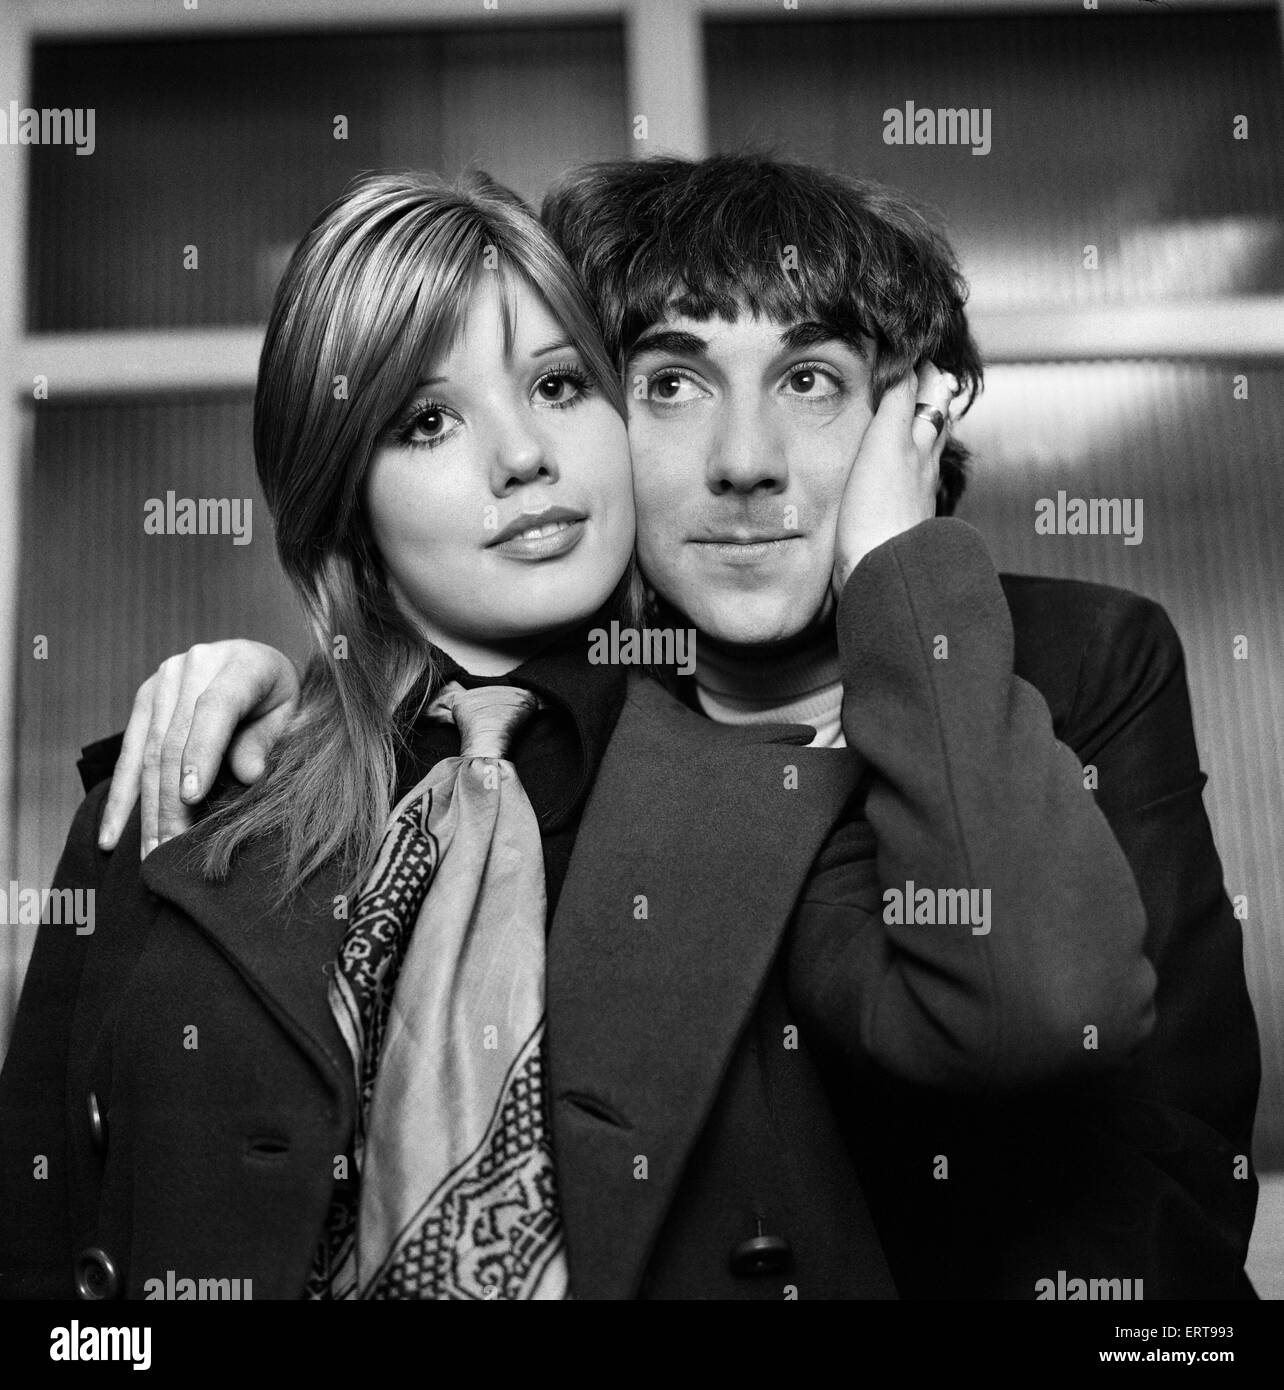 Keith Moon, le batteur du groupe de rock britannique The Who, photographiée avec sa femme Kim. Le 24 mars 1969. Photo Stock